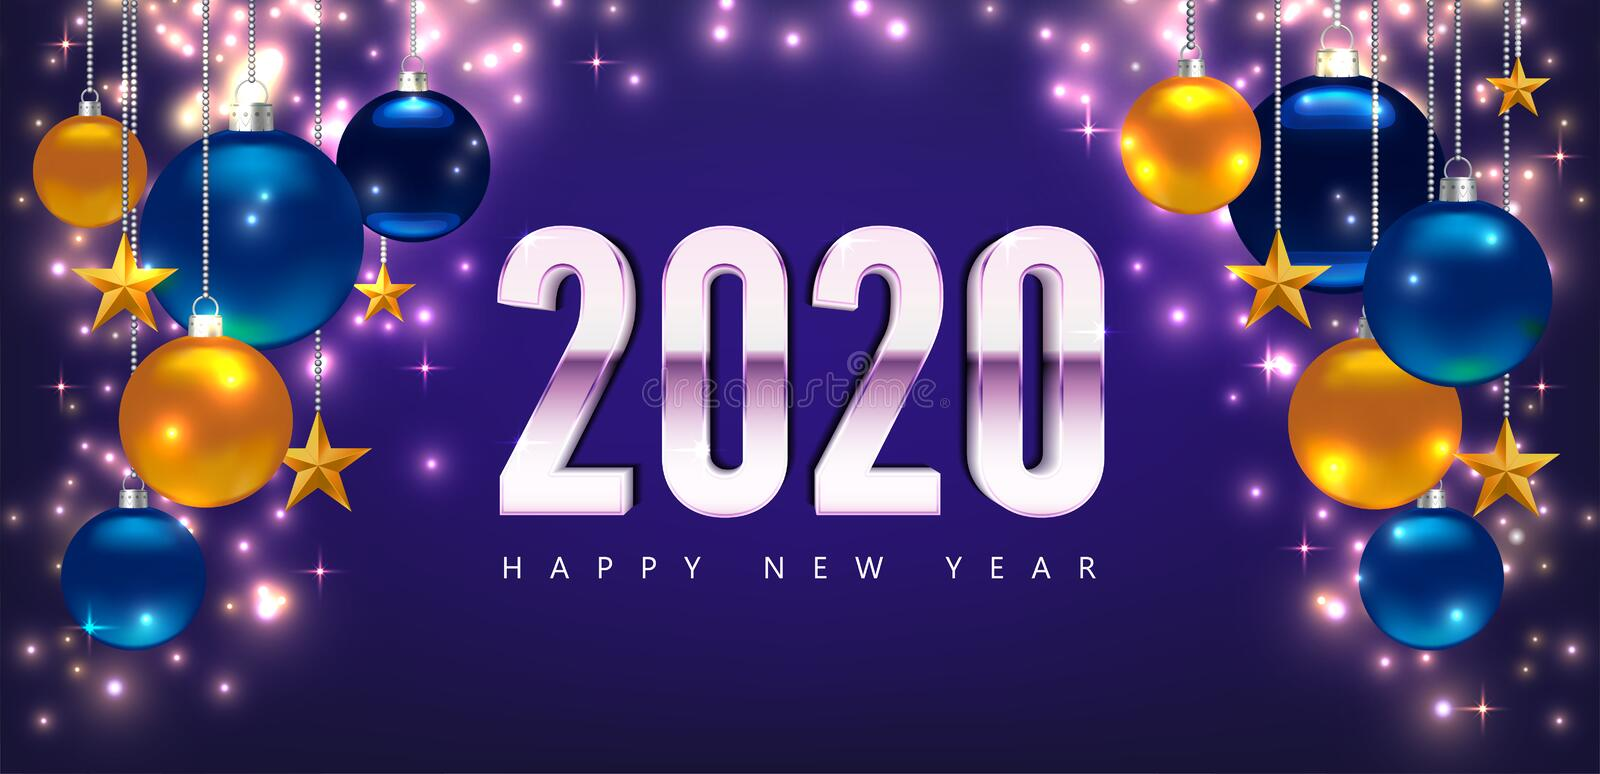 New Year 2020 greeting cards. Magic template Happy New Year. Template for Card, Flyer, poster, invitation, banner vector illustration